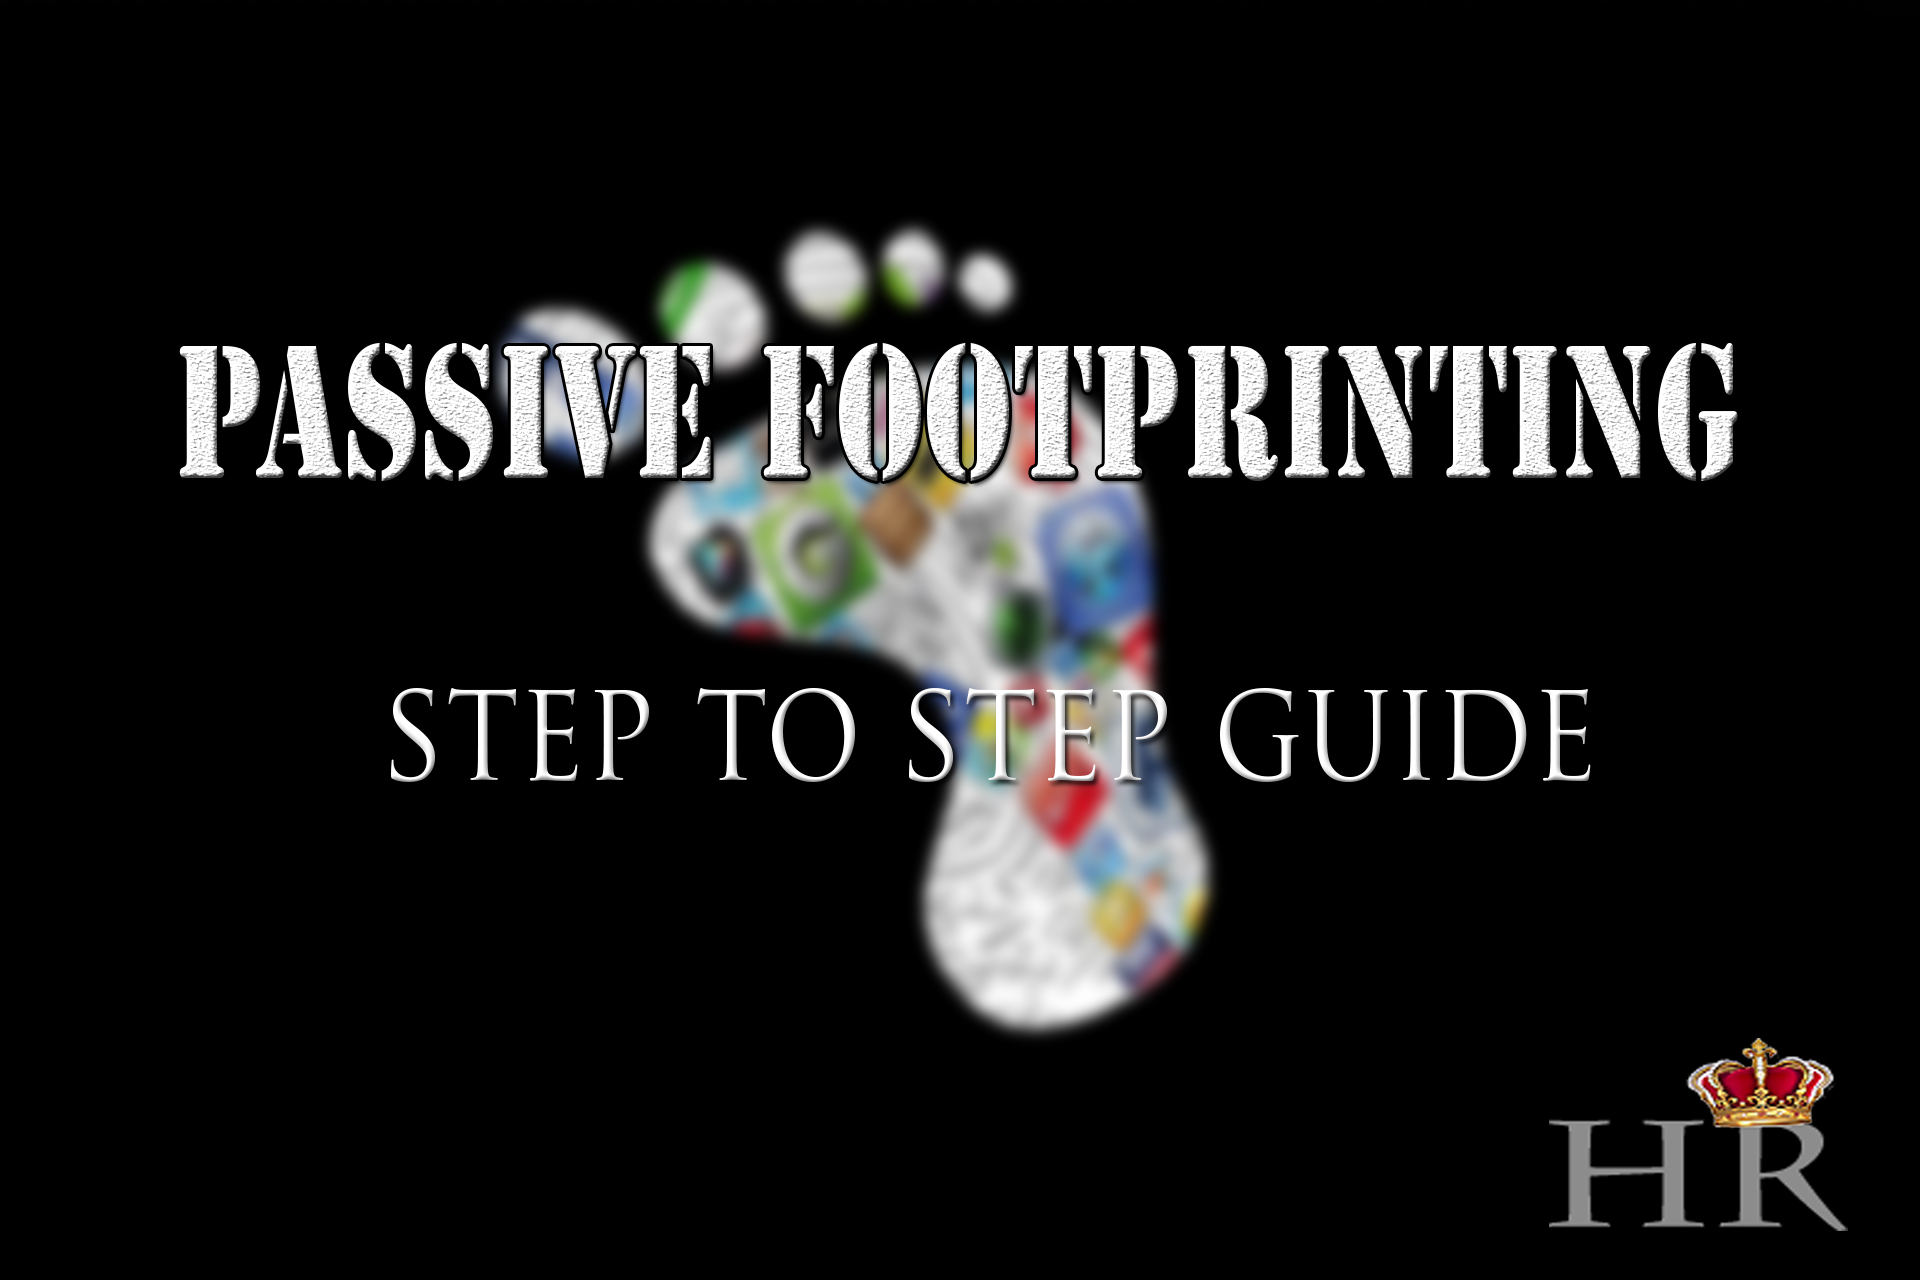 How to do passive footprinting? Step-by-step guide